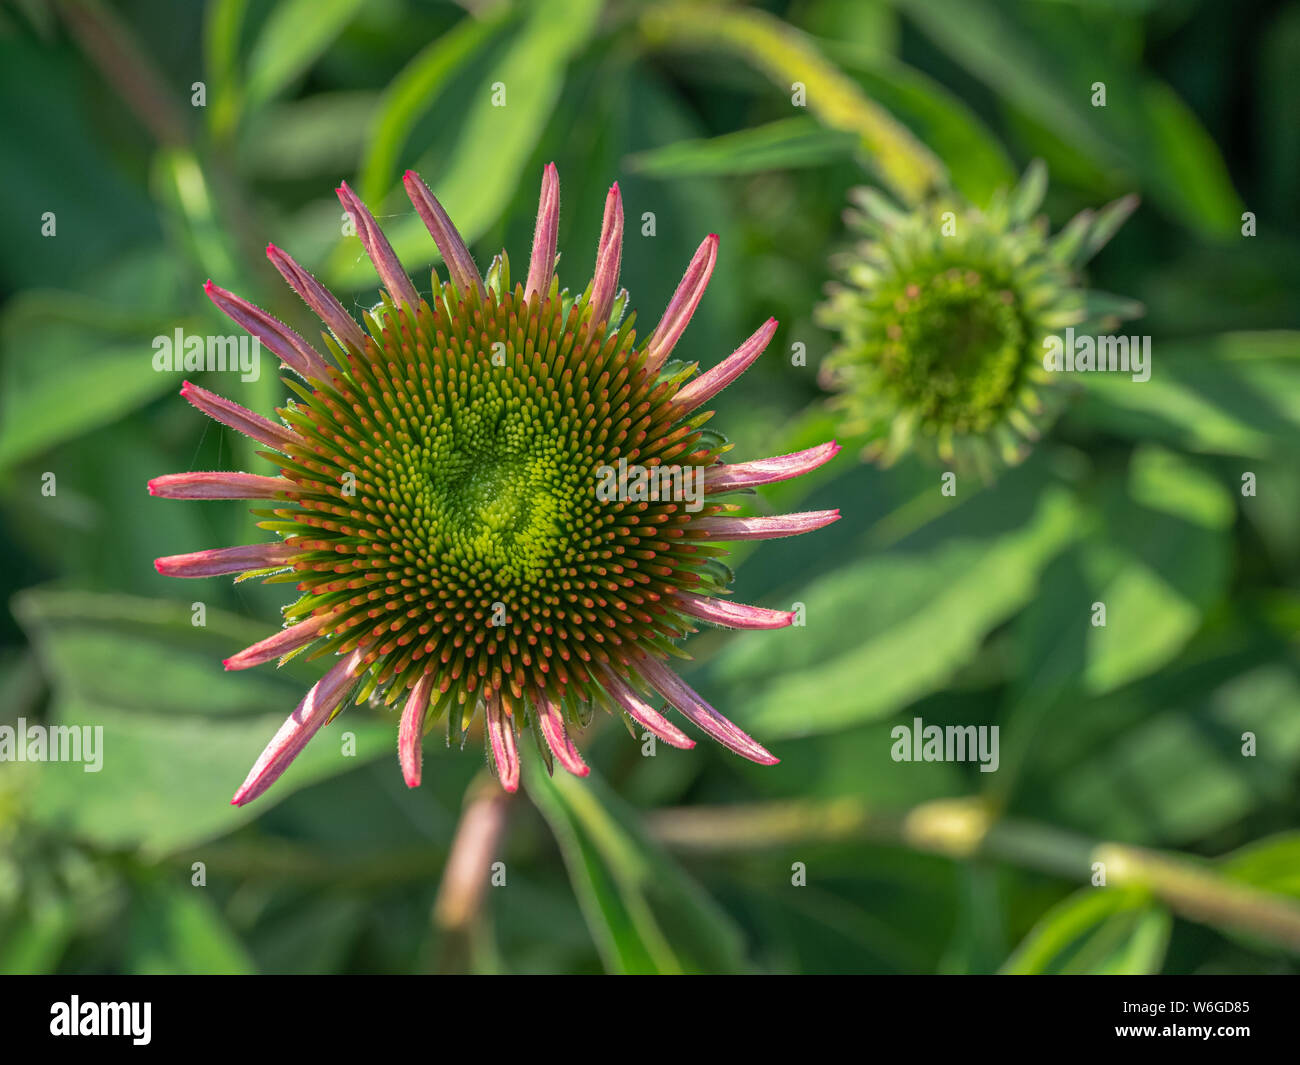 Close up looking down at a coneflower (Echinacea) flower starting to open, with soft- focus leaves and another blossom opening in the background Stock Photo